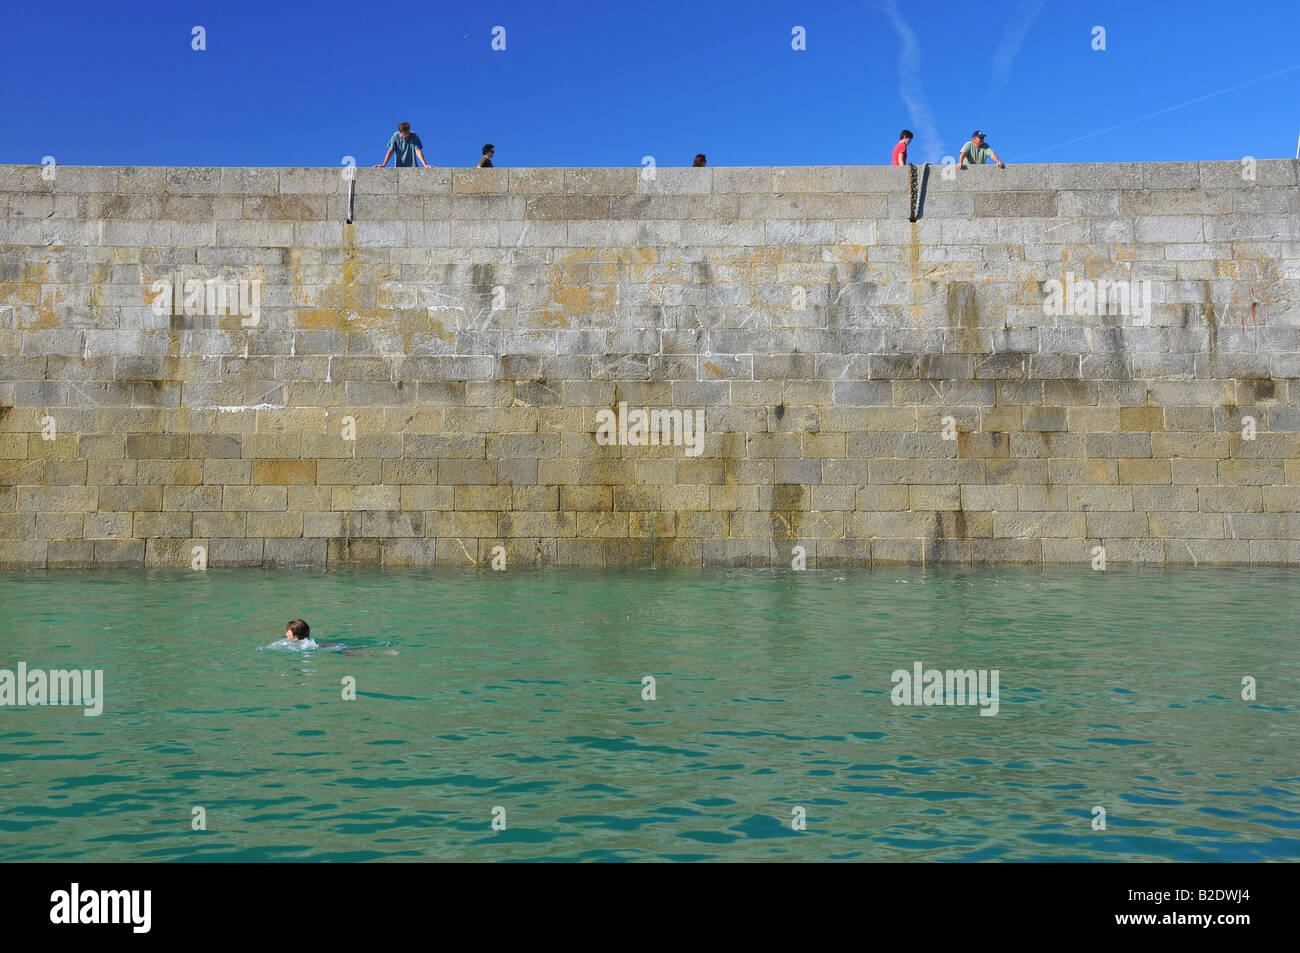 people on a high deck looking at a swimmer downwards by a sunny day - Stock Image